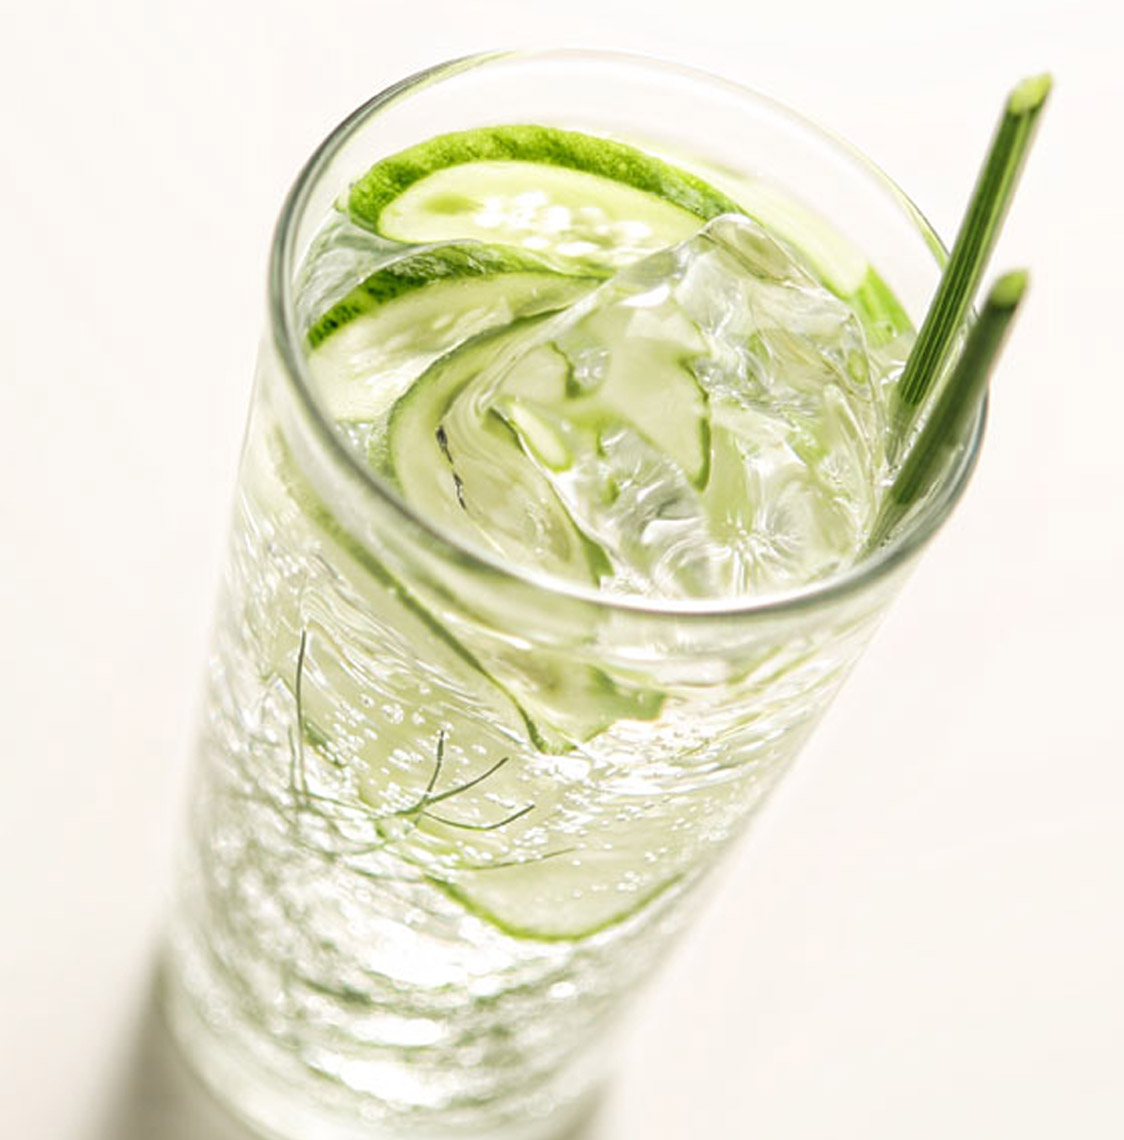 Cucumber Drink Food Beverage Photography- © Aristo Studios